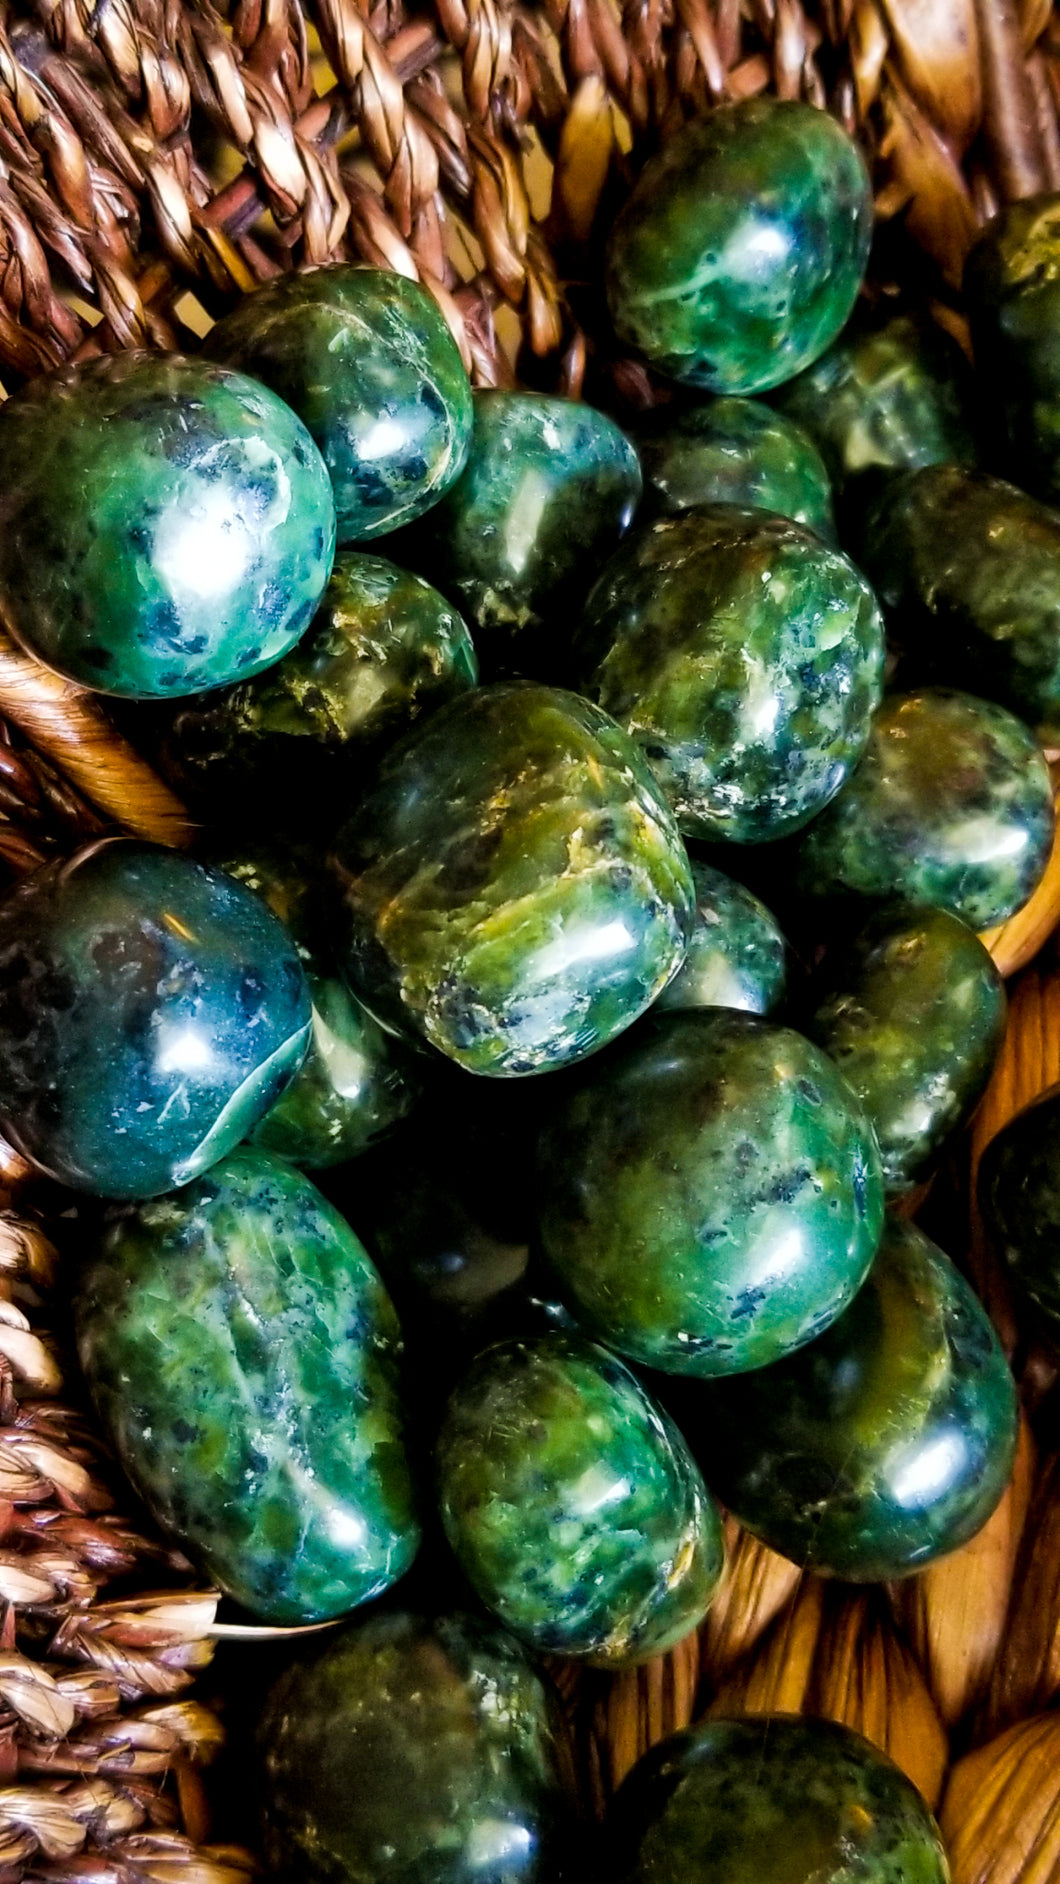 Nephrite Jade Crystal Tumble || India